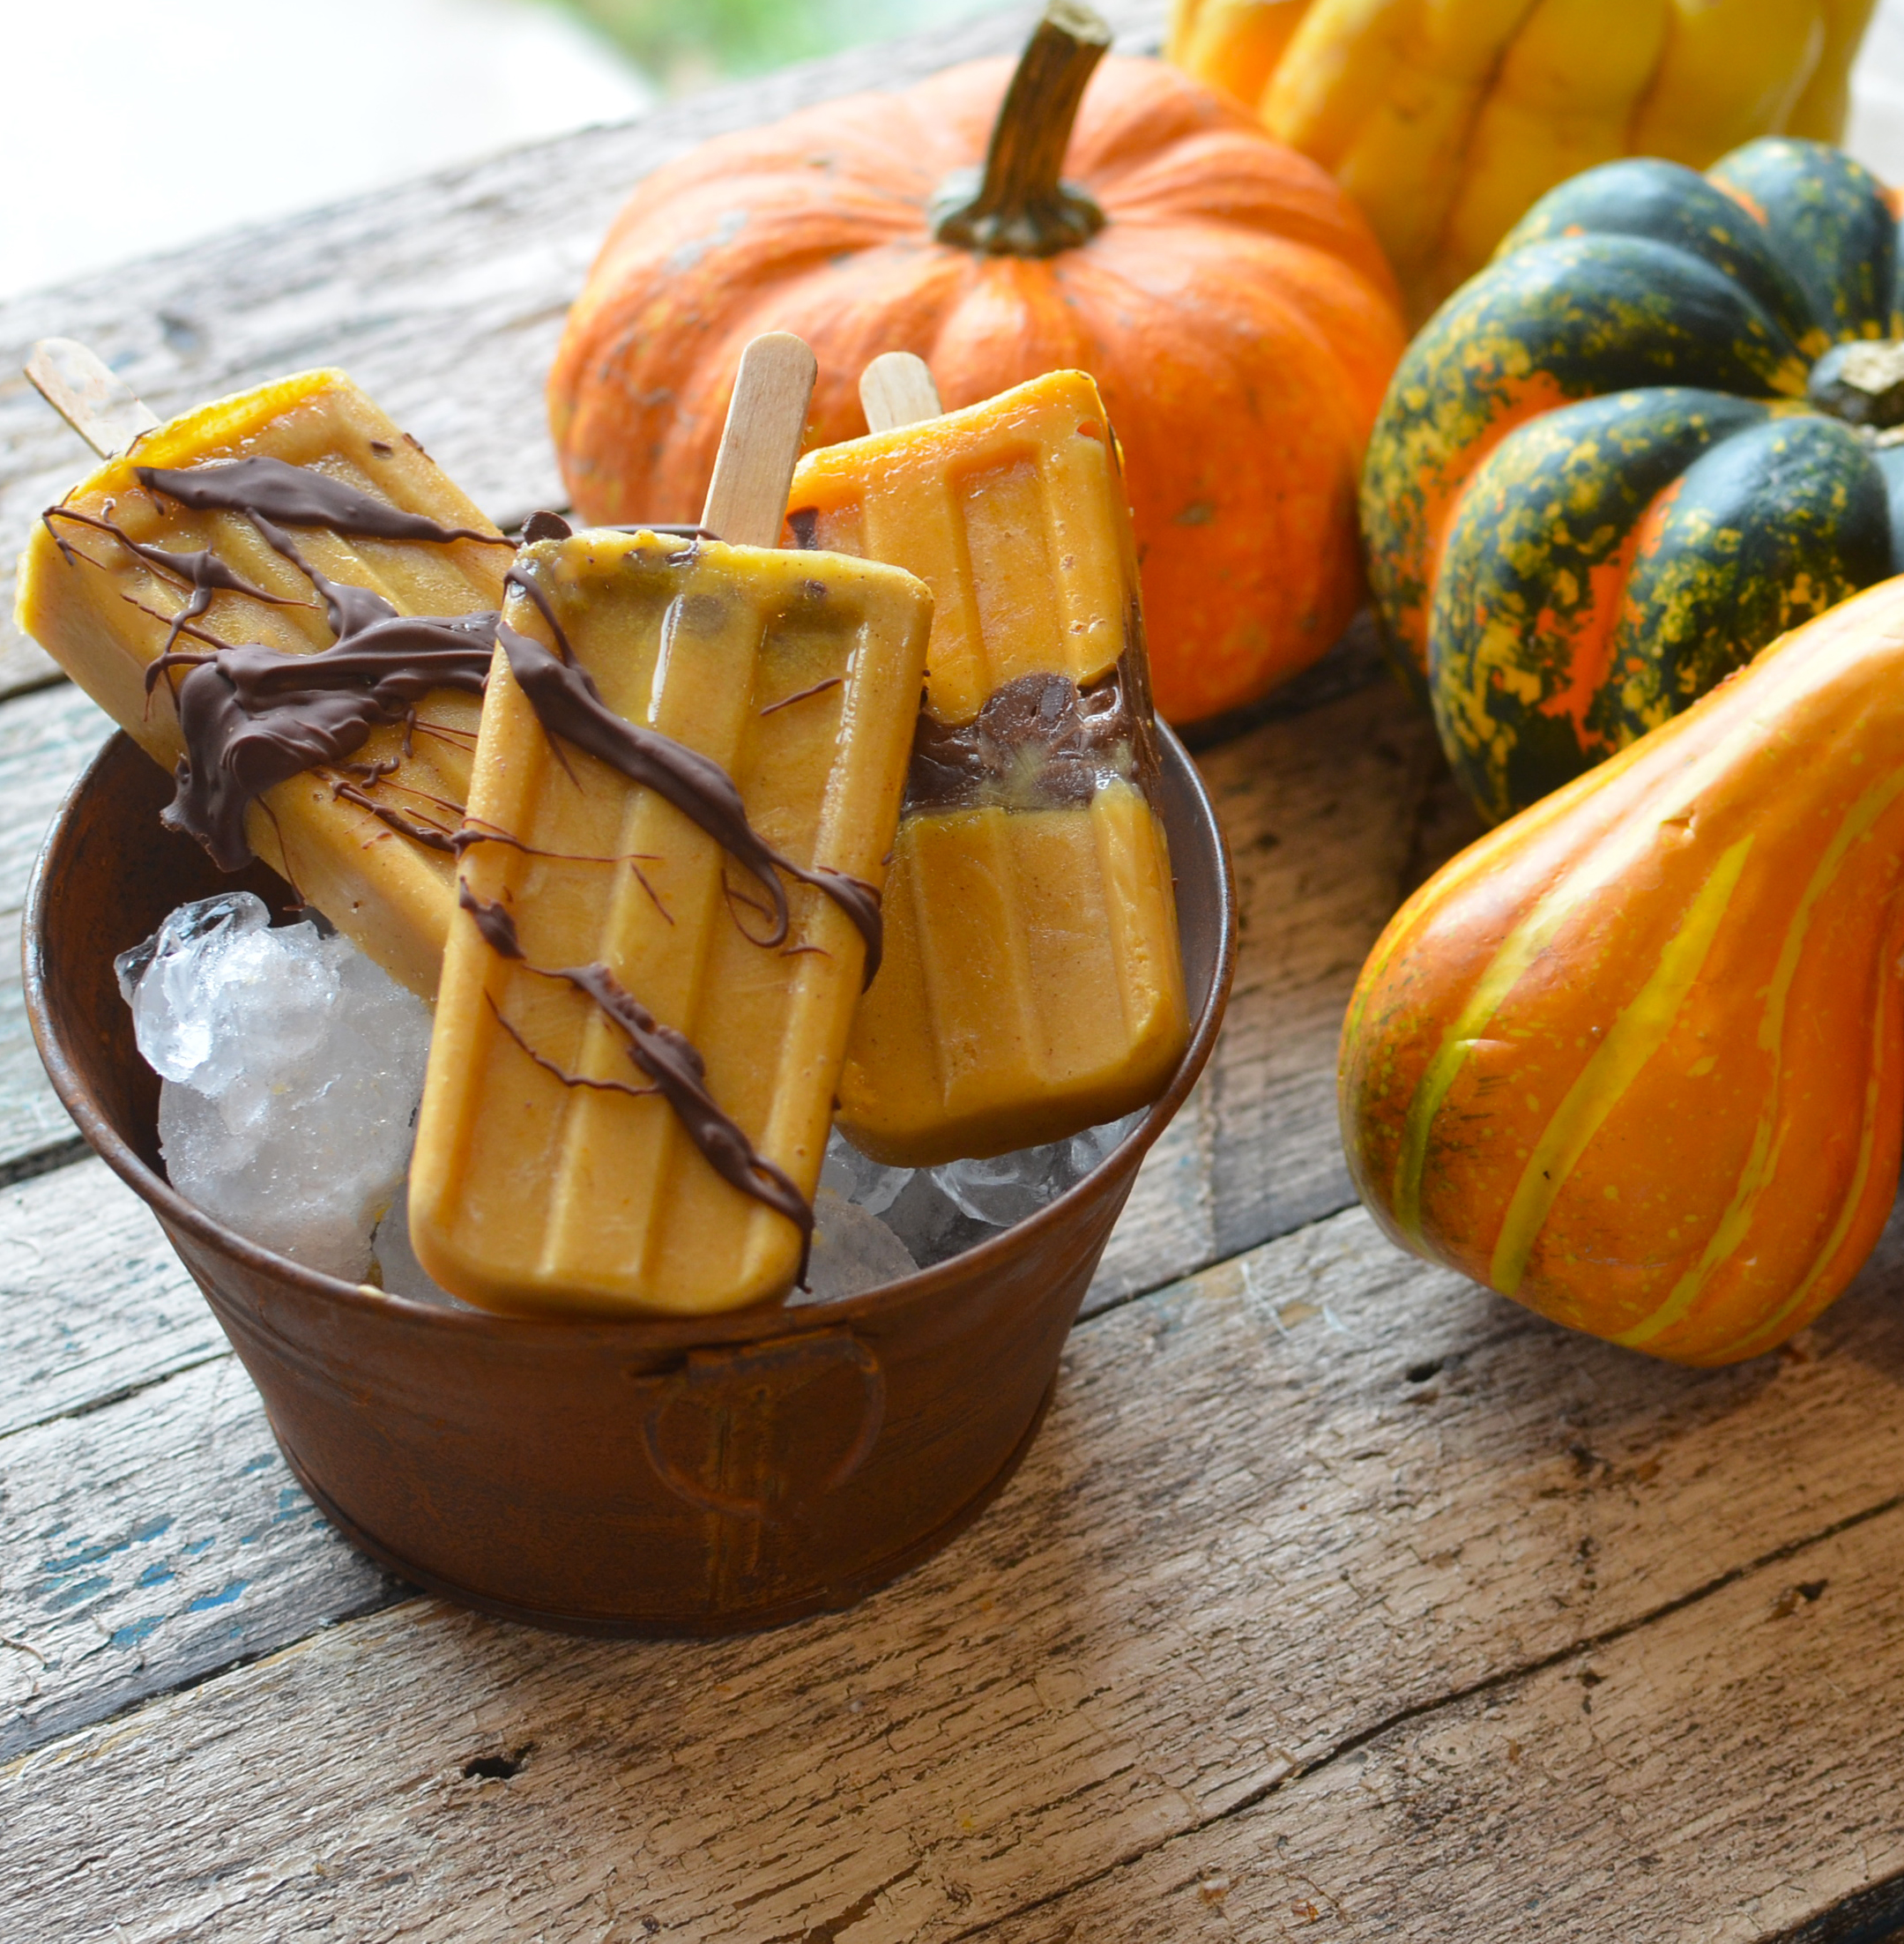 11 Helpful Tips For Planning A Spectacular Fall Vegetable: Pumpkin Chocolate Popsicles